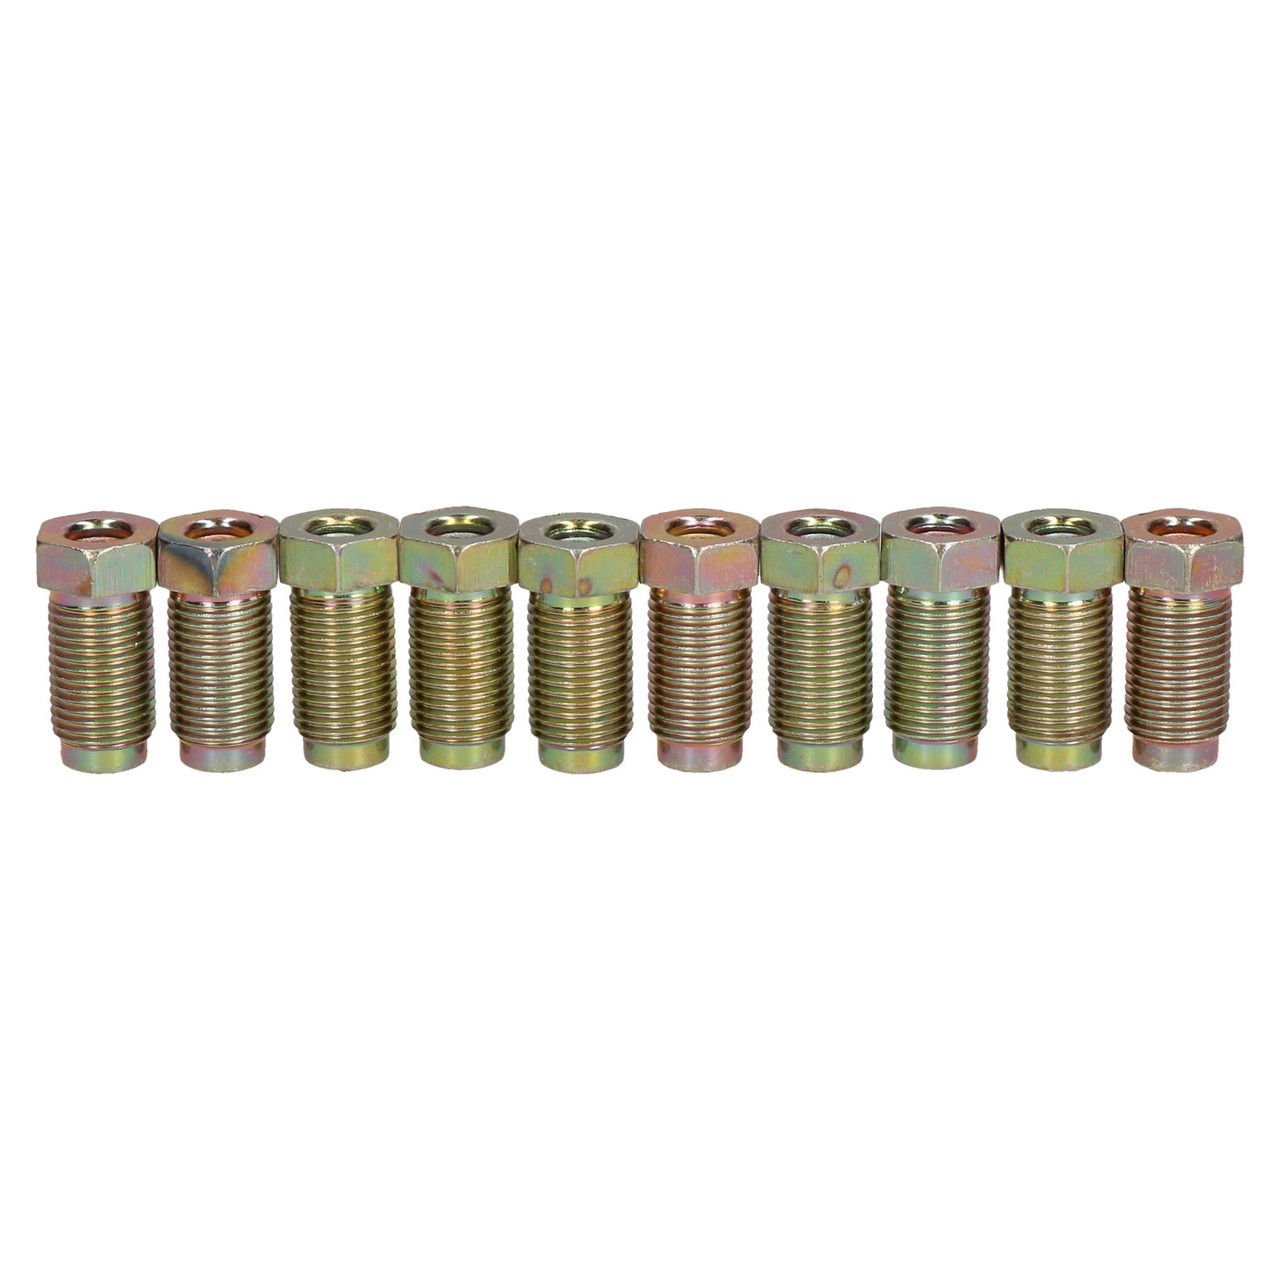 AB Tools Long Steel Male Brake Pipe Union Fittings M10 x 1mm for 3//16 Brake Pipe 10pc